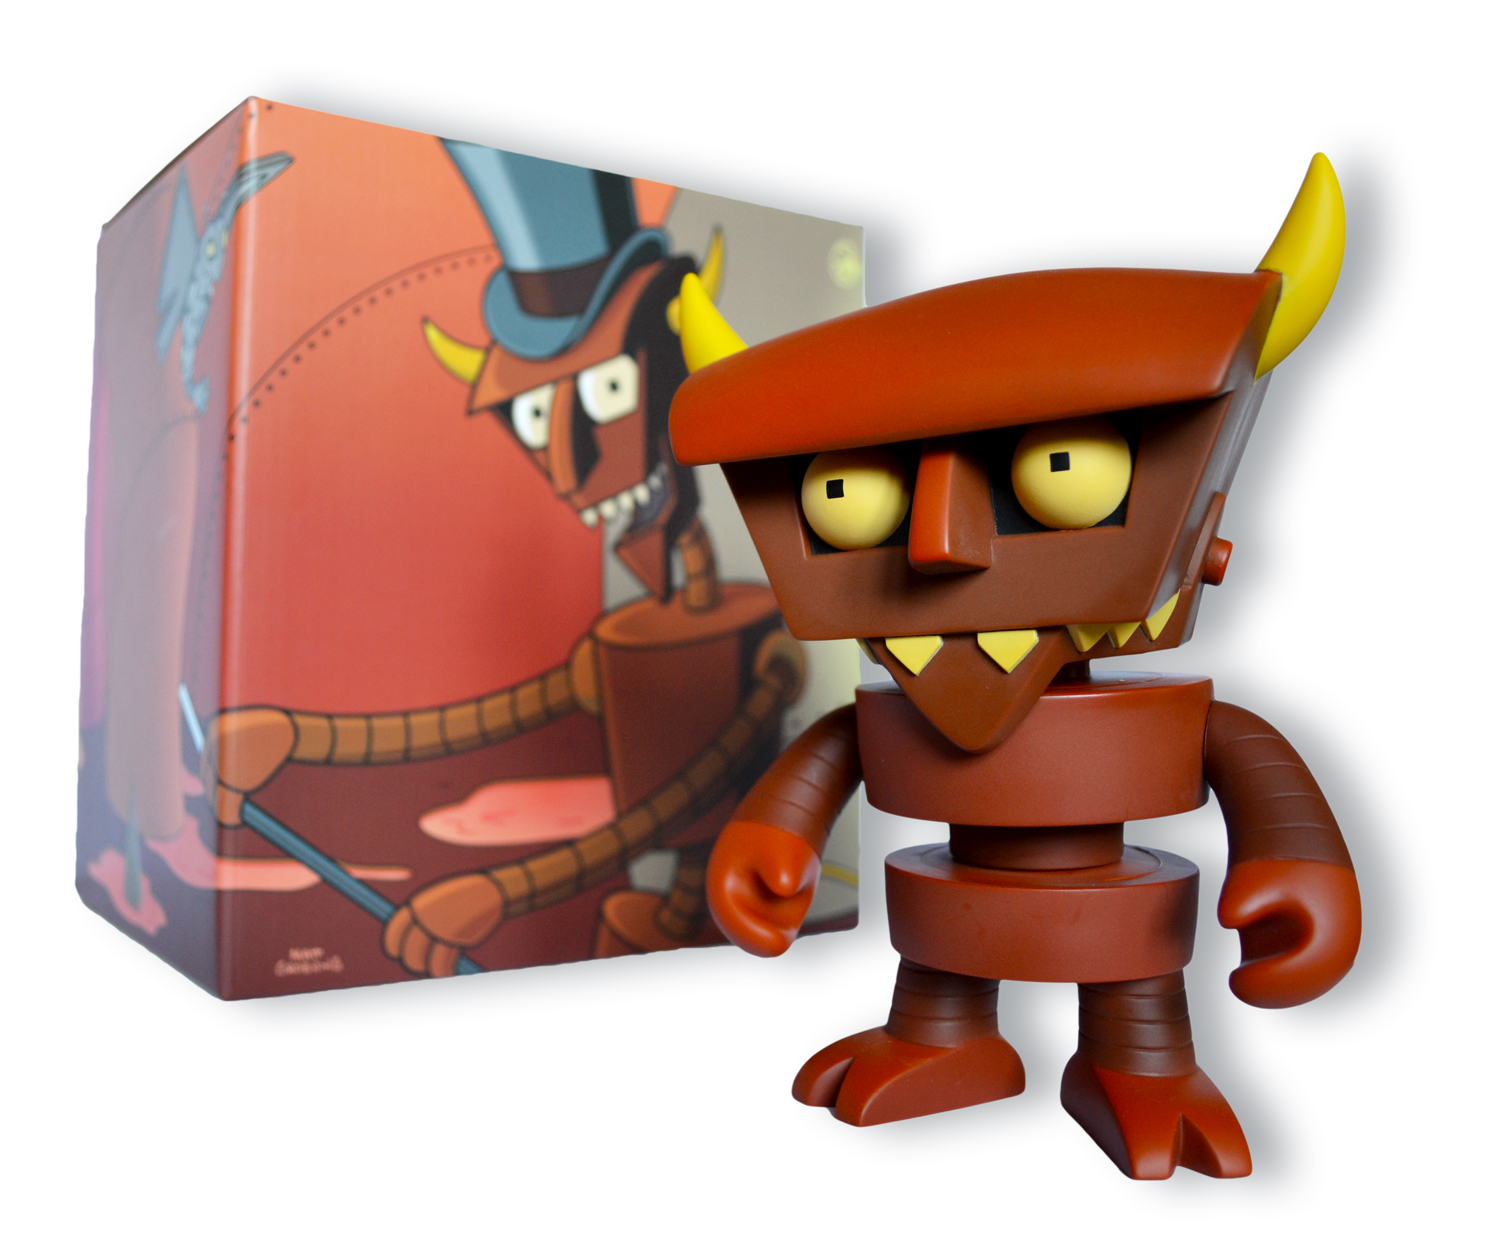 Robot Devil with box